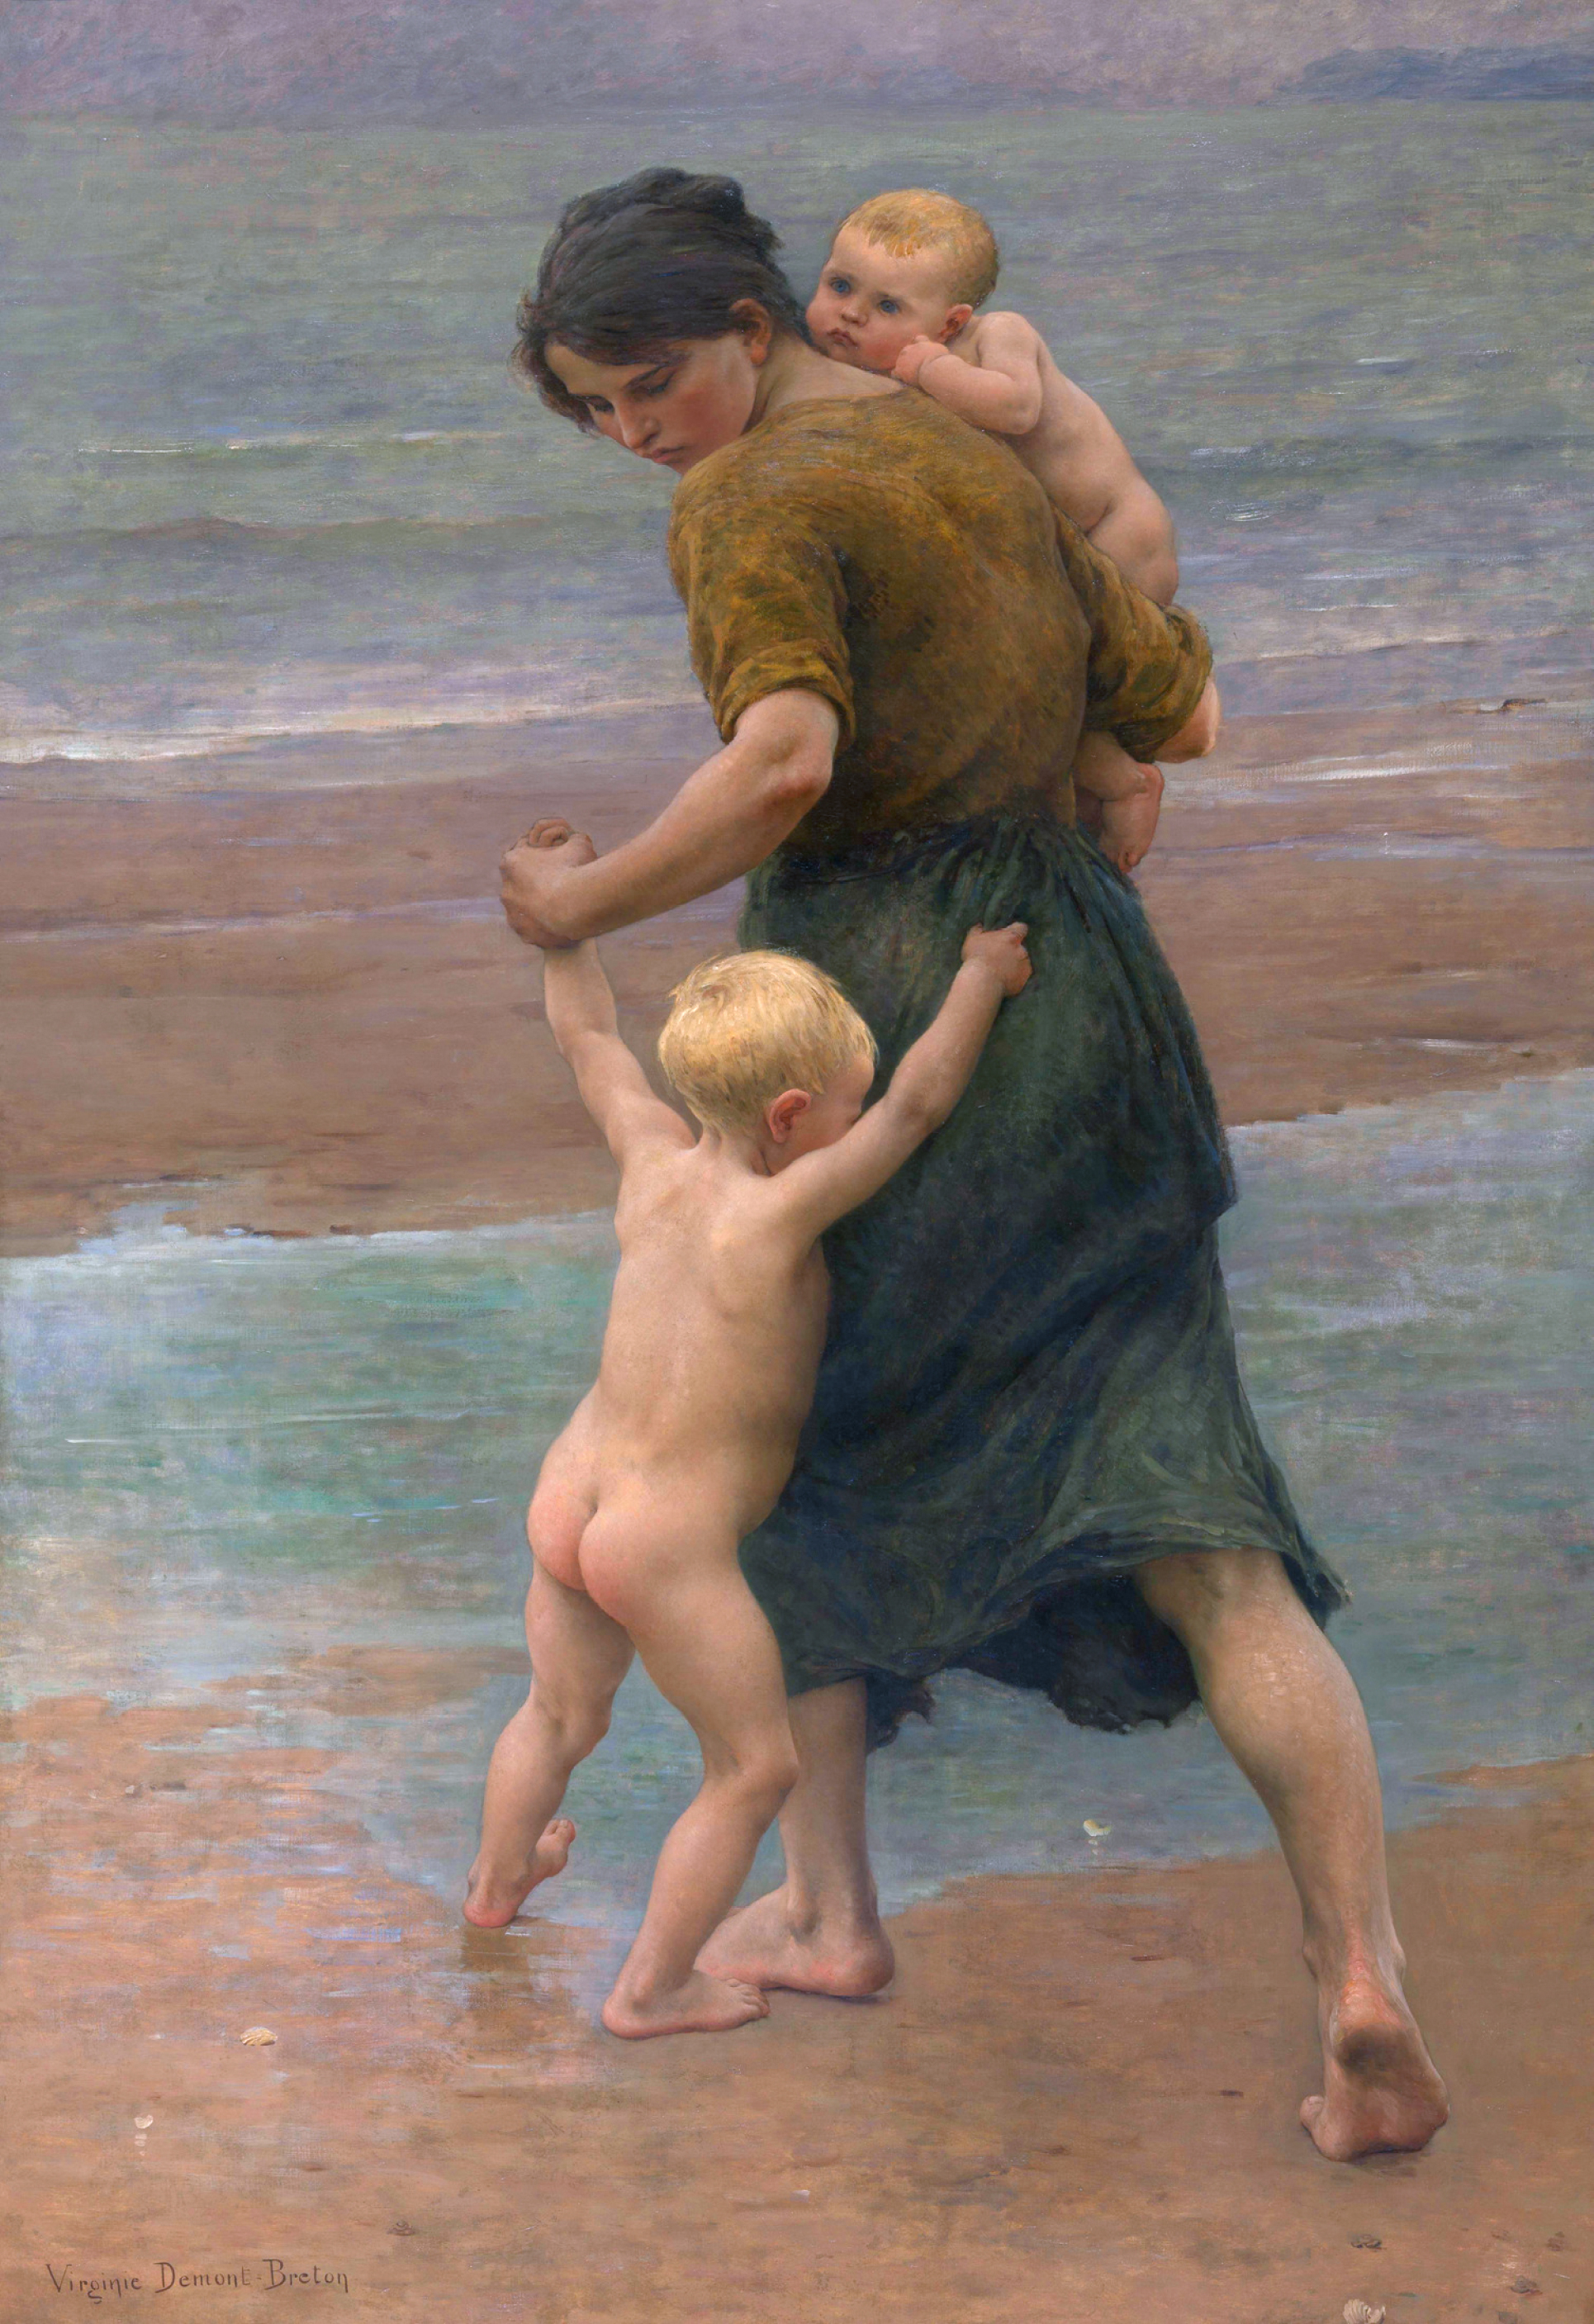 https://upload.wikimedia.org/wikipedia/commons/2/2b/Into_the_water%2C_by_Virginie_Demont-Breton.jpg